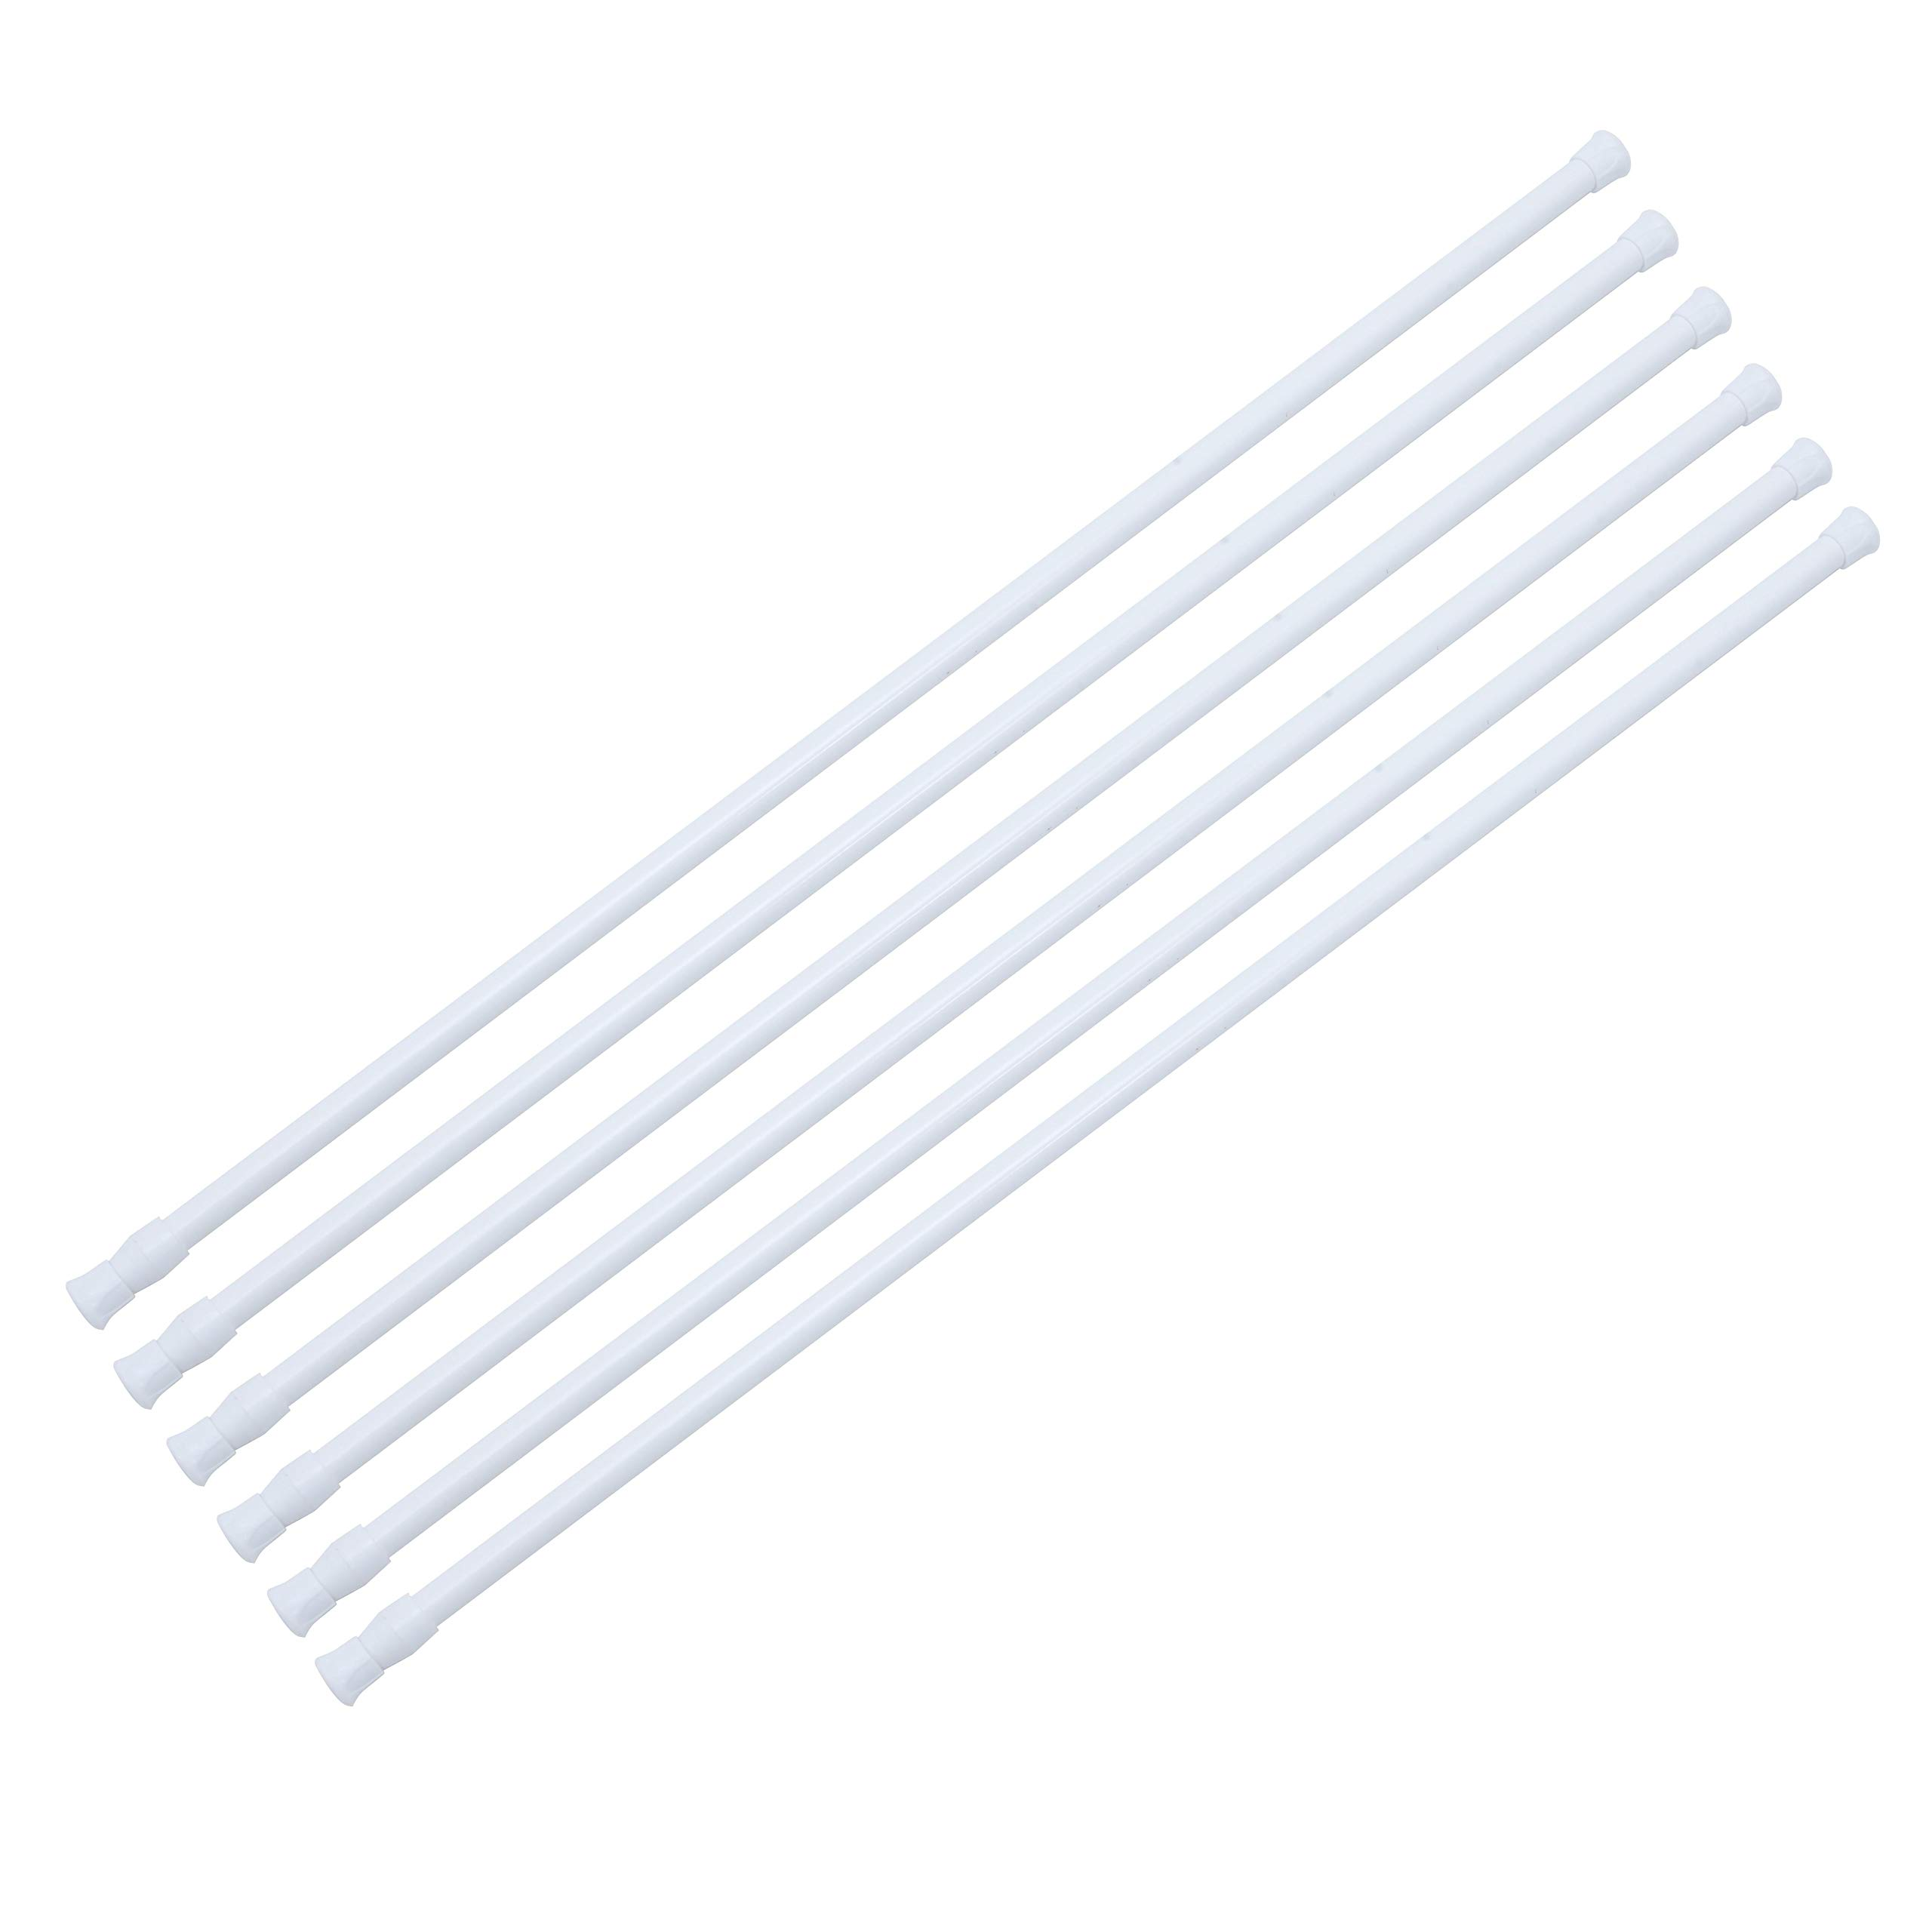 Dyna-Living 6 Pcs Curtain Rods Adjustable 0.5 inch Diameter 28 to 48 Inch Curtain Pole Expandable Tension White by Dyna-Living